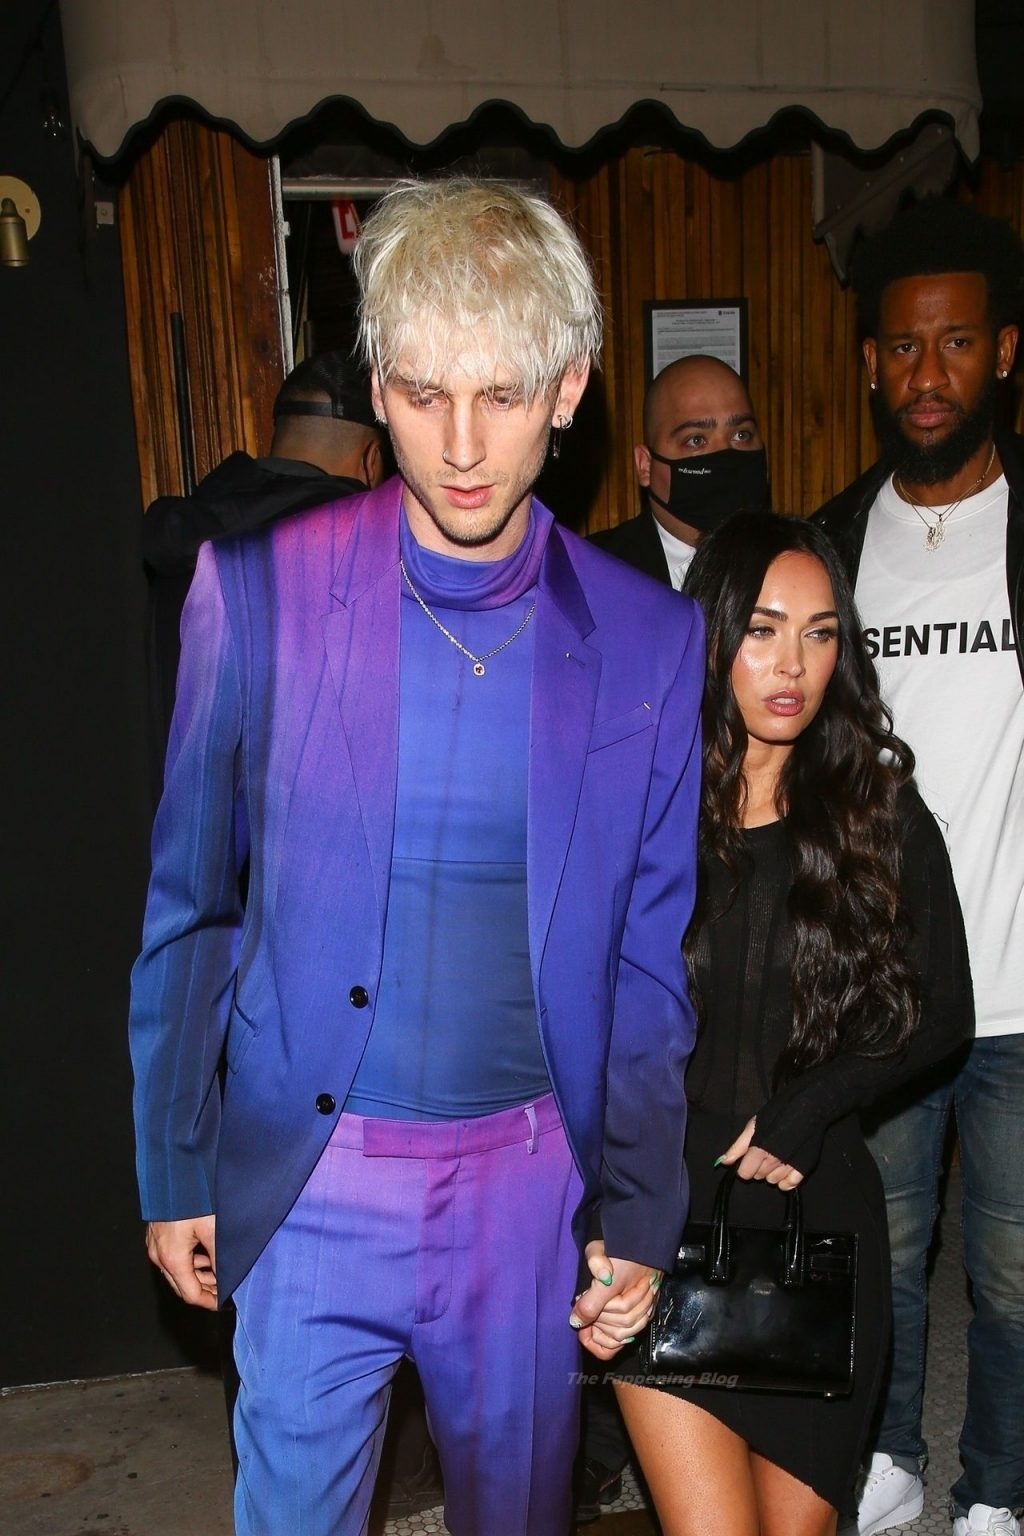 Megan Fox & MGK are Seen Leaving an Event at The Nice Guy (70 Photos)